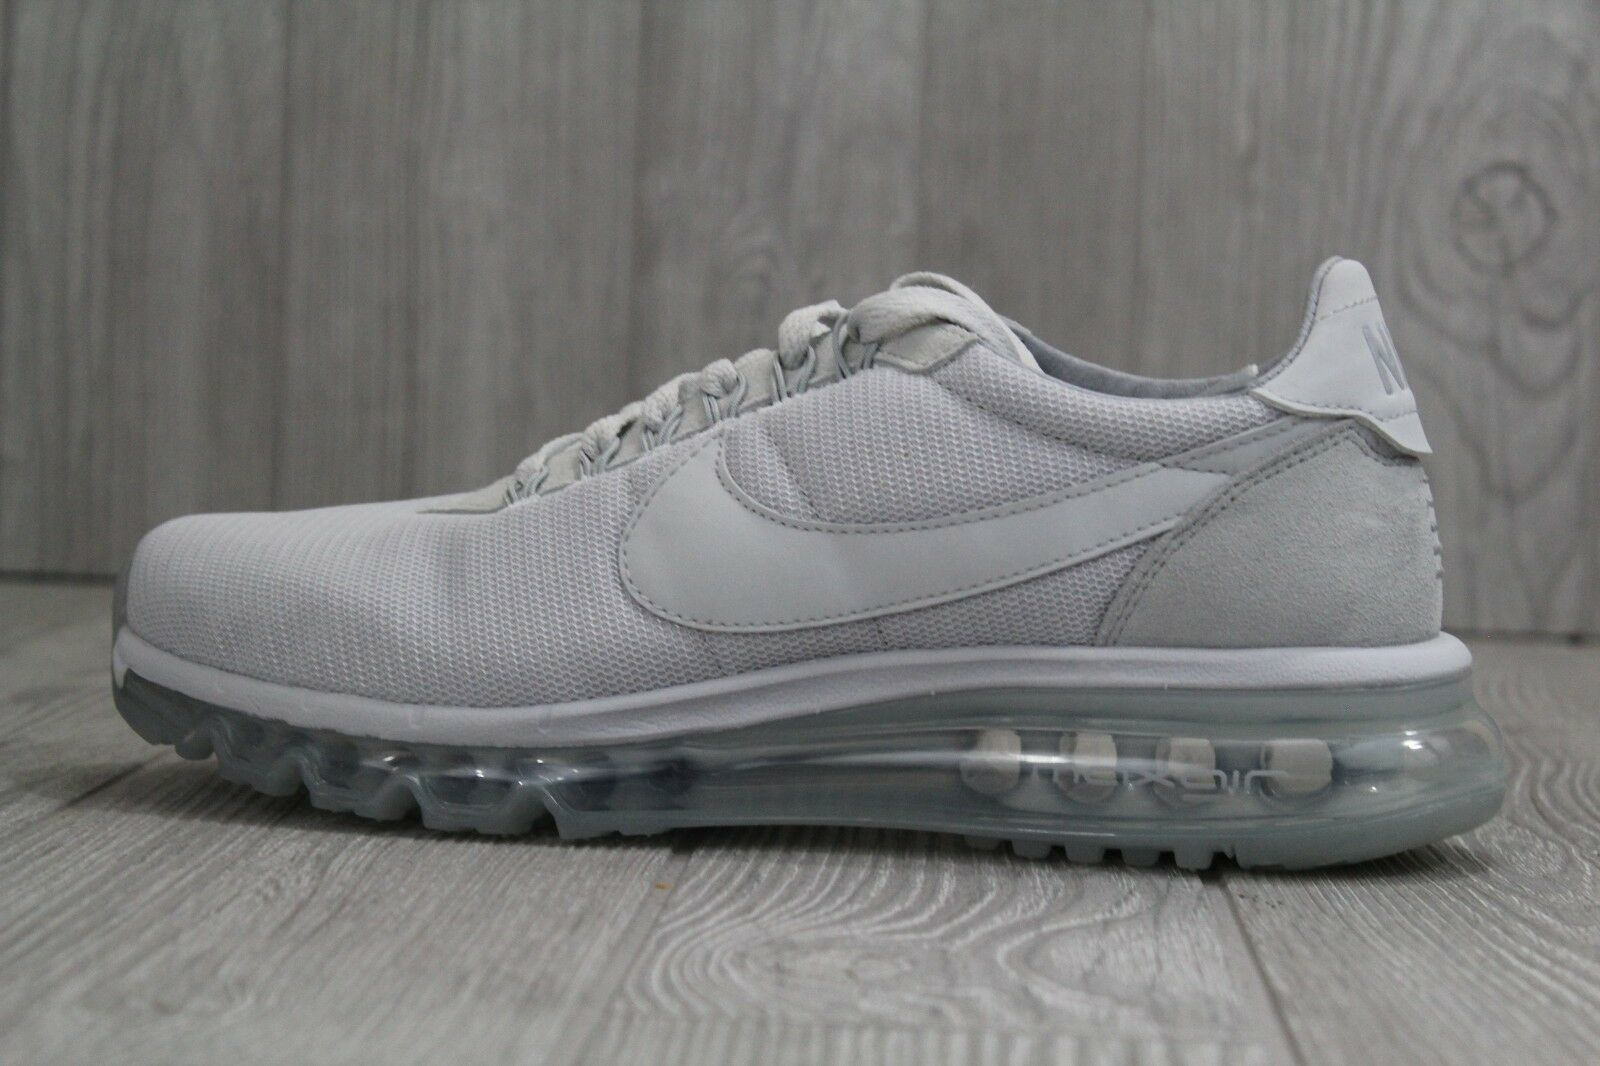 0caf13d59c 32 New Nike Mens Air Max LD-Zero Running shoes 848624-004 Pure Platinum